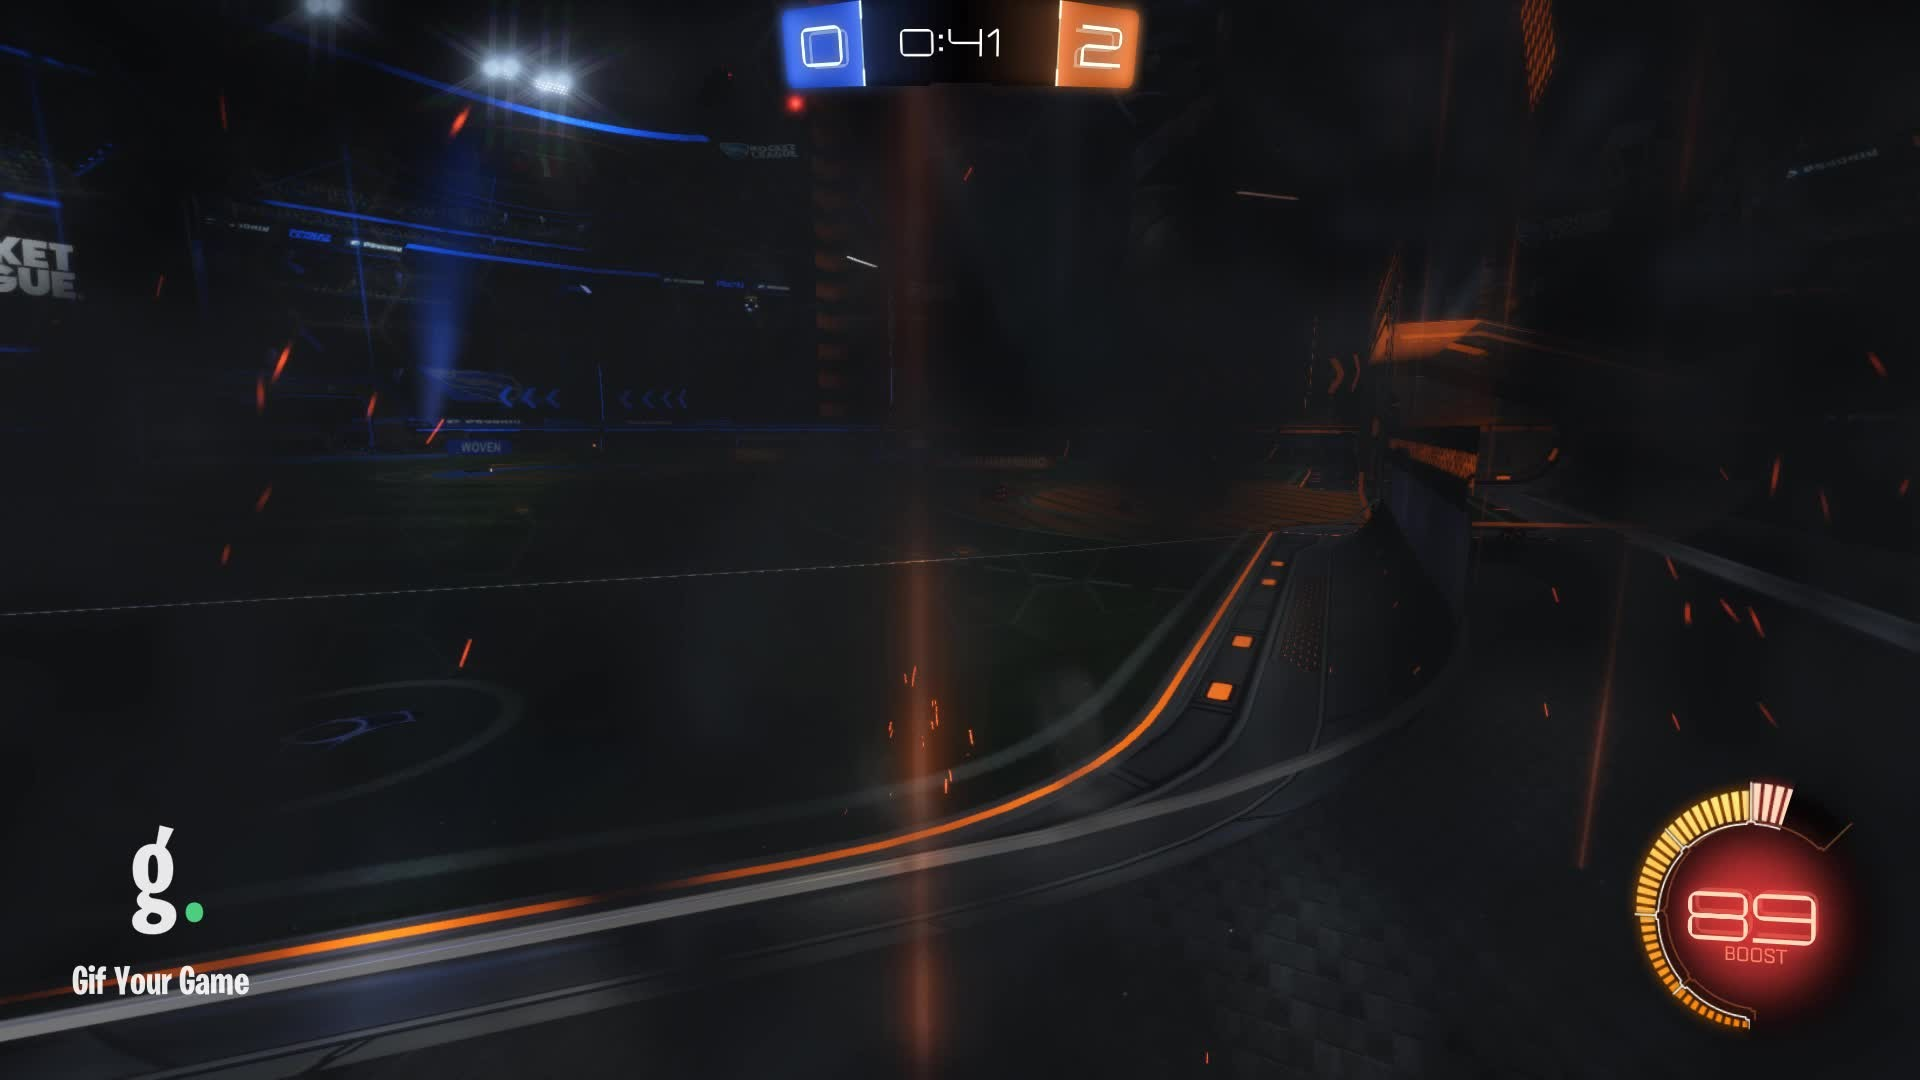 1920x1080 Demo, Gif Your Game, GifYourGame, Rocket League, RocketLeague,  Spookspider150, Demo